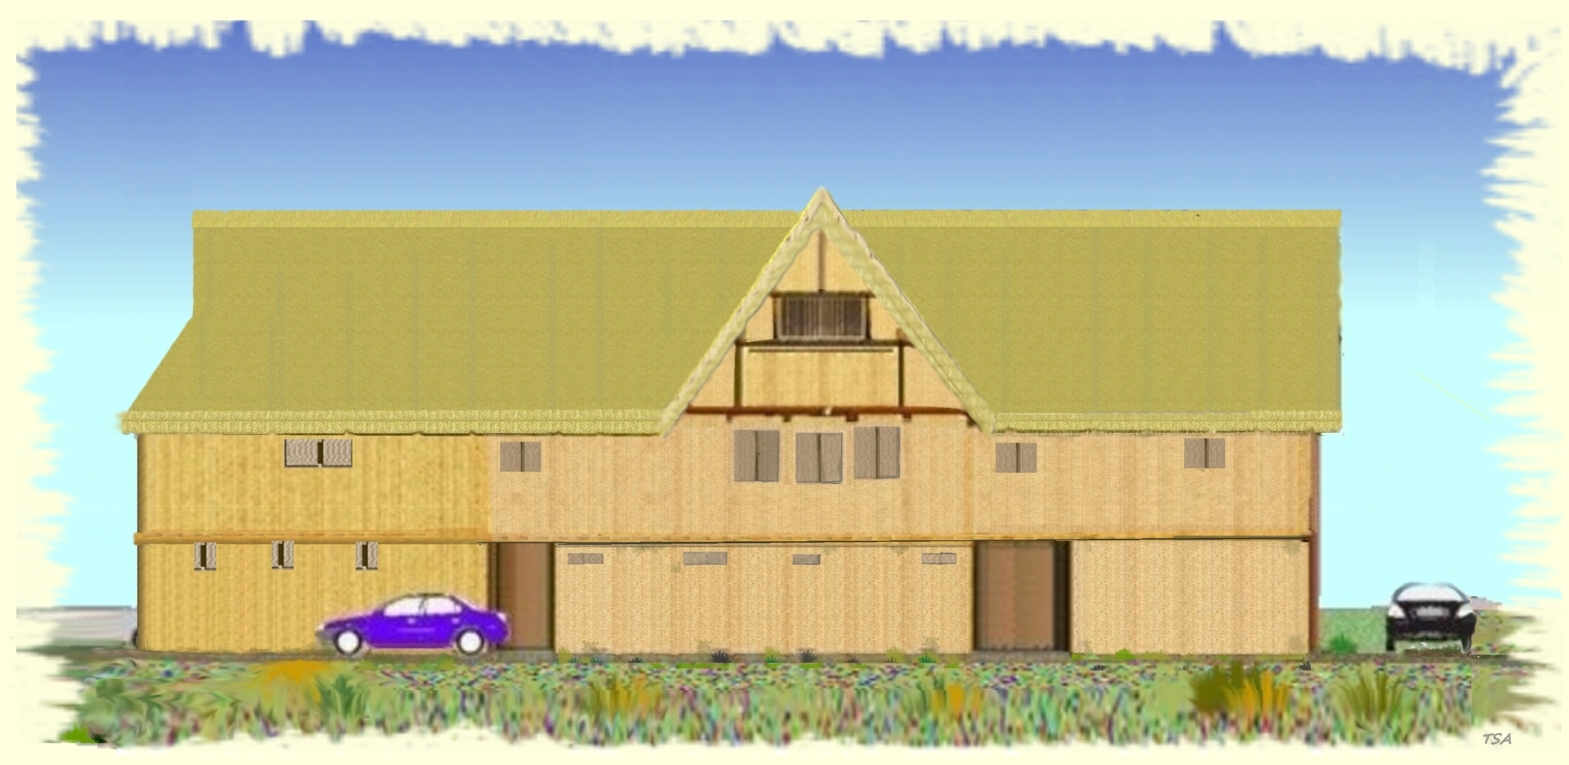 This First Image Is My Minimal View Of A Two Frame Building With Floor And Attic Space It Features Half Hip Roof At The NW End Central